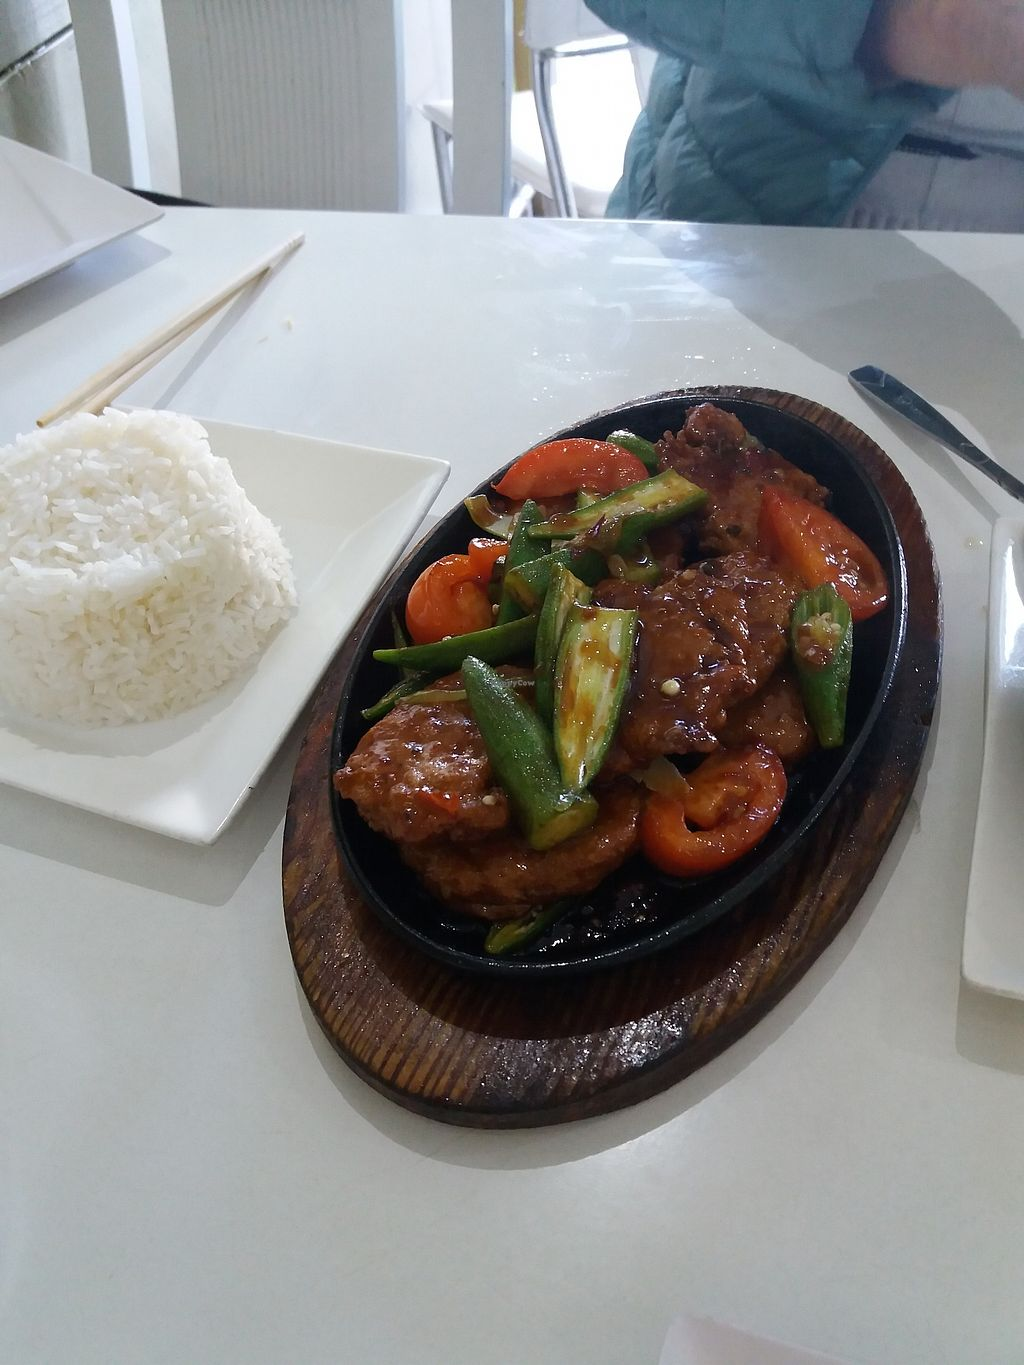 """Photo of Loving Hut  by <a href=""""/members/profile/veganvirtues"""">veganvirtues</a> <br/>Soy chicken with okra <br/> September 2, 2017  - <a href='/contact/abuse/image/11553/299879'>Report</a>"""